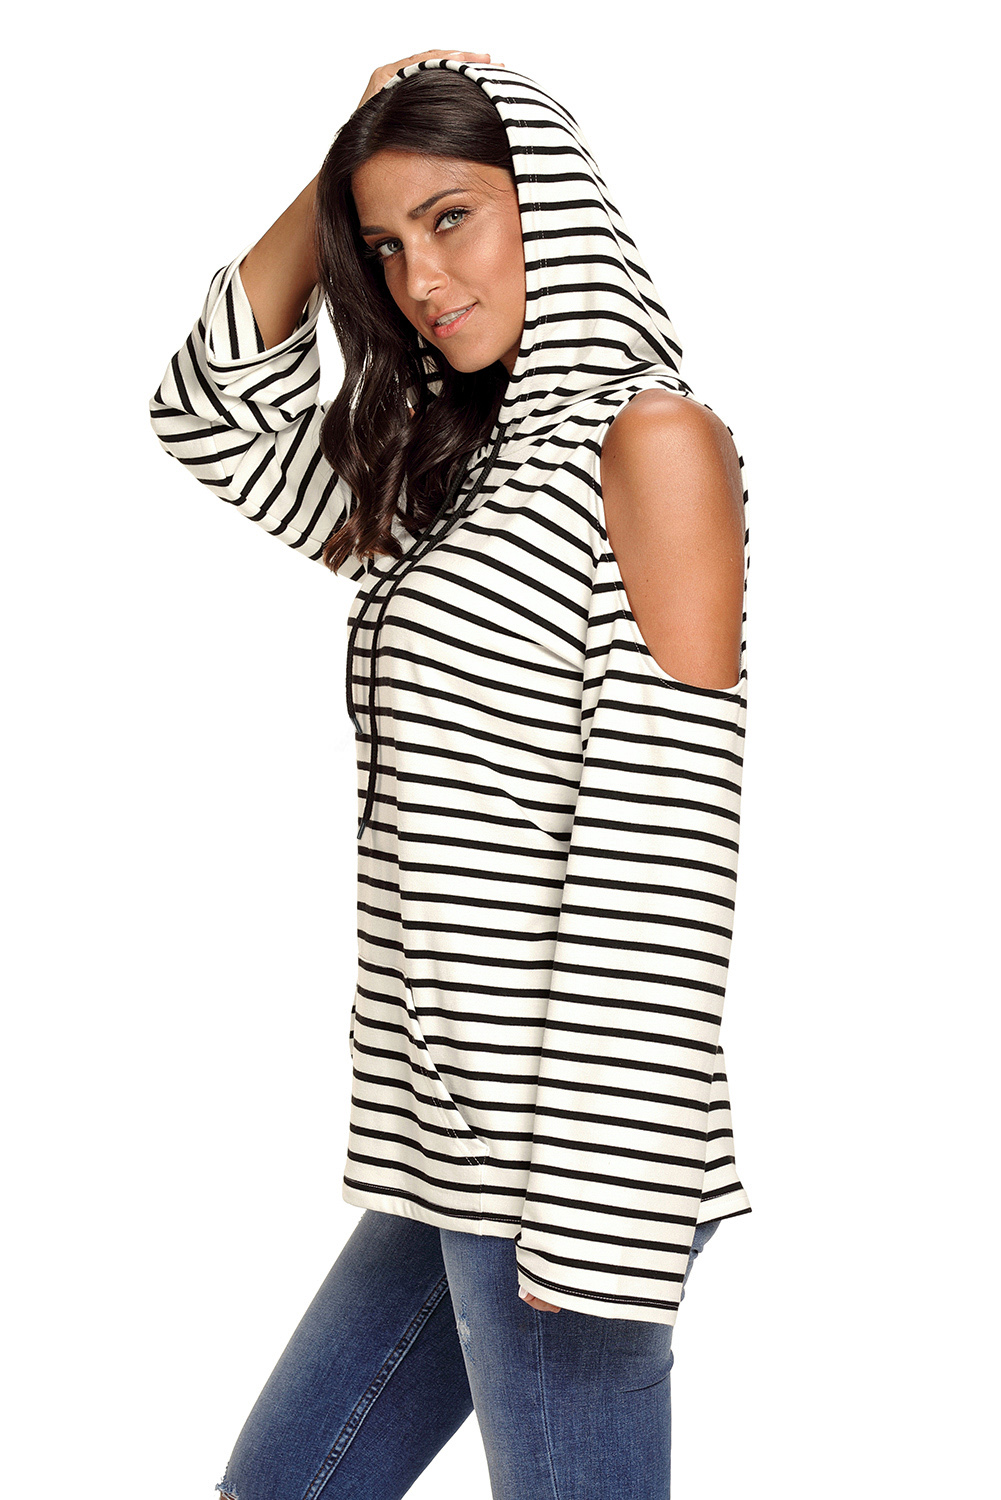 73d07dfb2aa56 Navy white striped cold shoulder long sleeve top womens shirt autumn ...